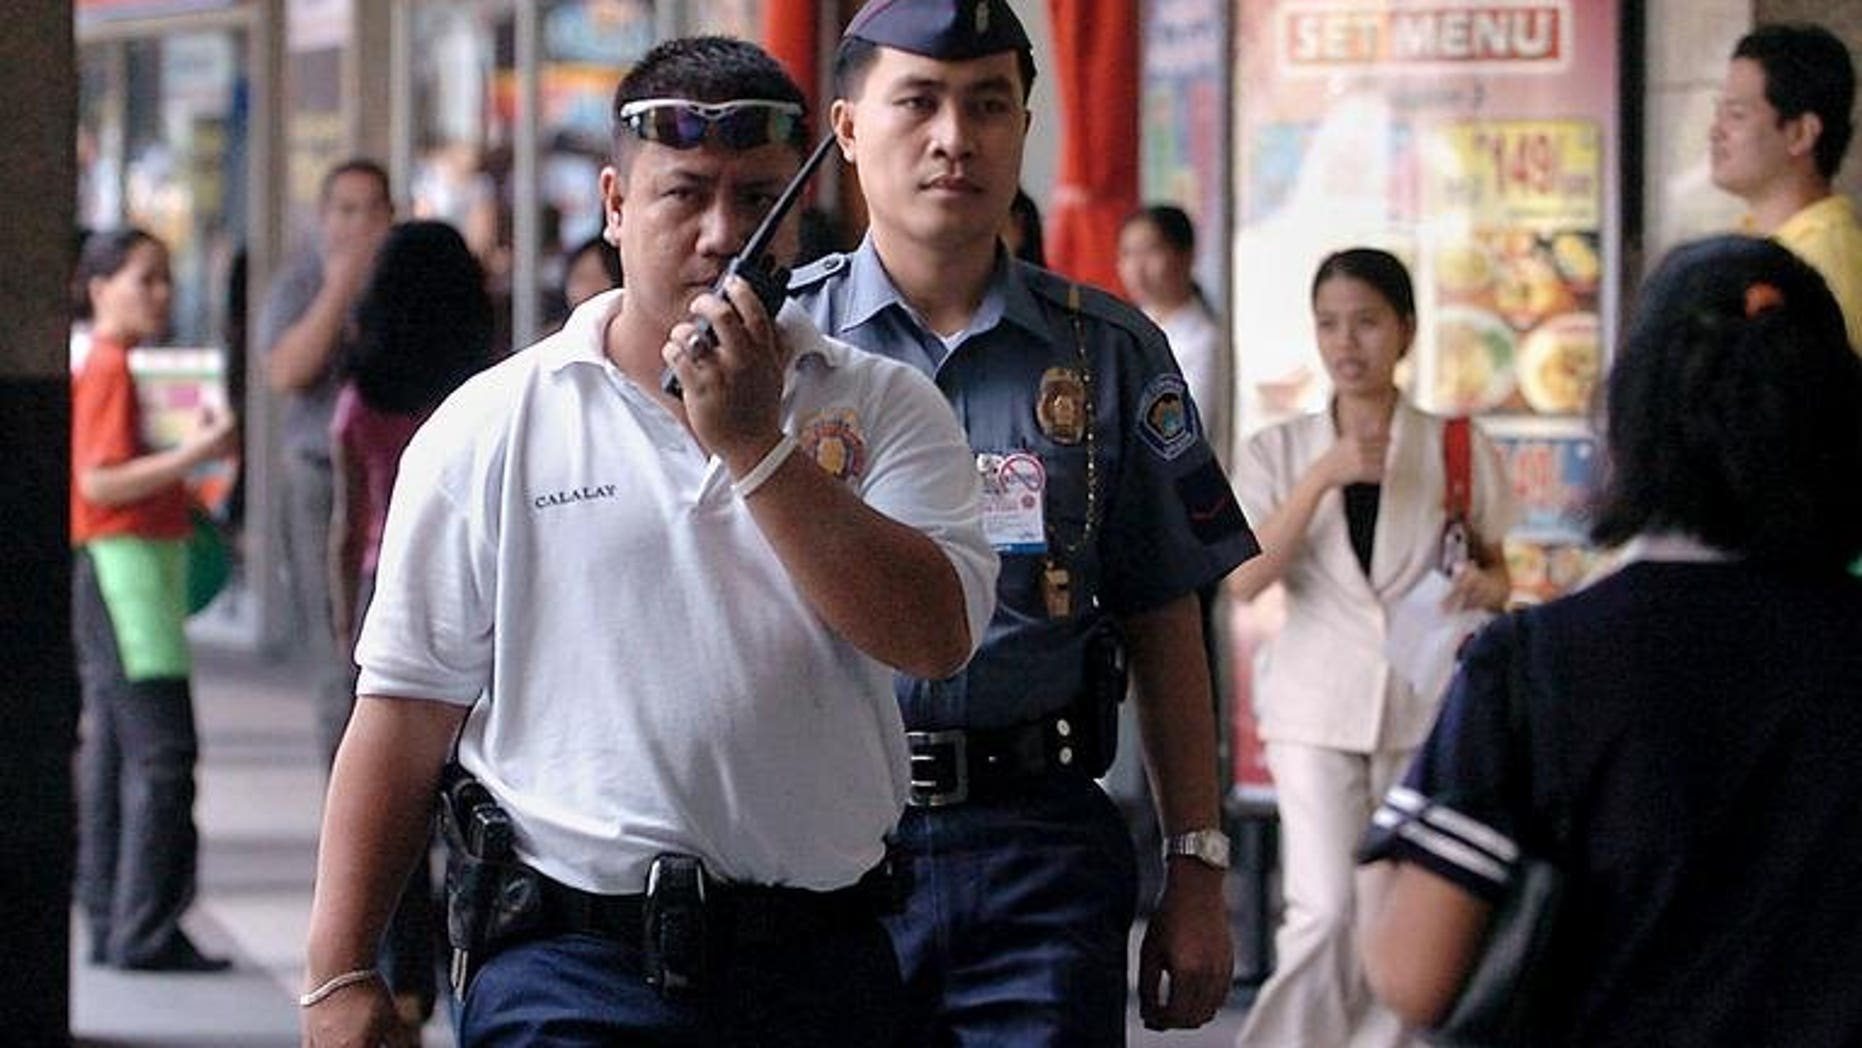 Policemen patrol in suburban Manila on February 16, 2005. An Australian resident of Hong Kong has been arrested for sexually abusing children in the Philippines, police said Tuesday.